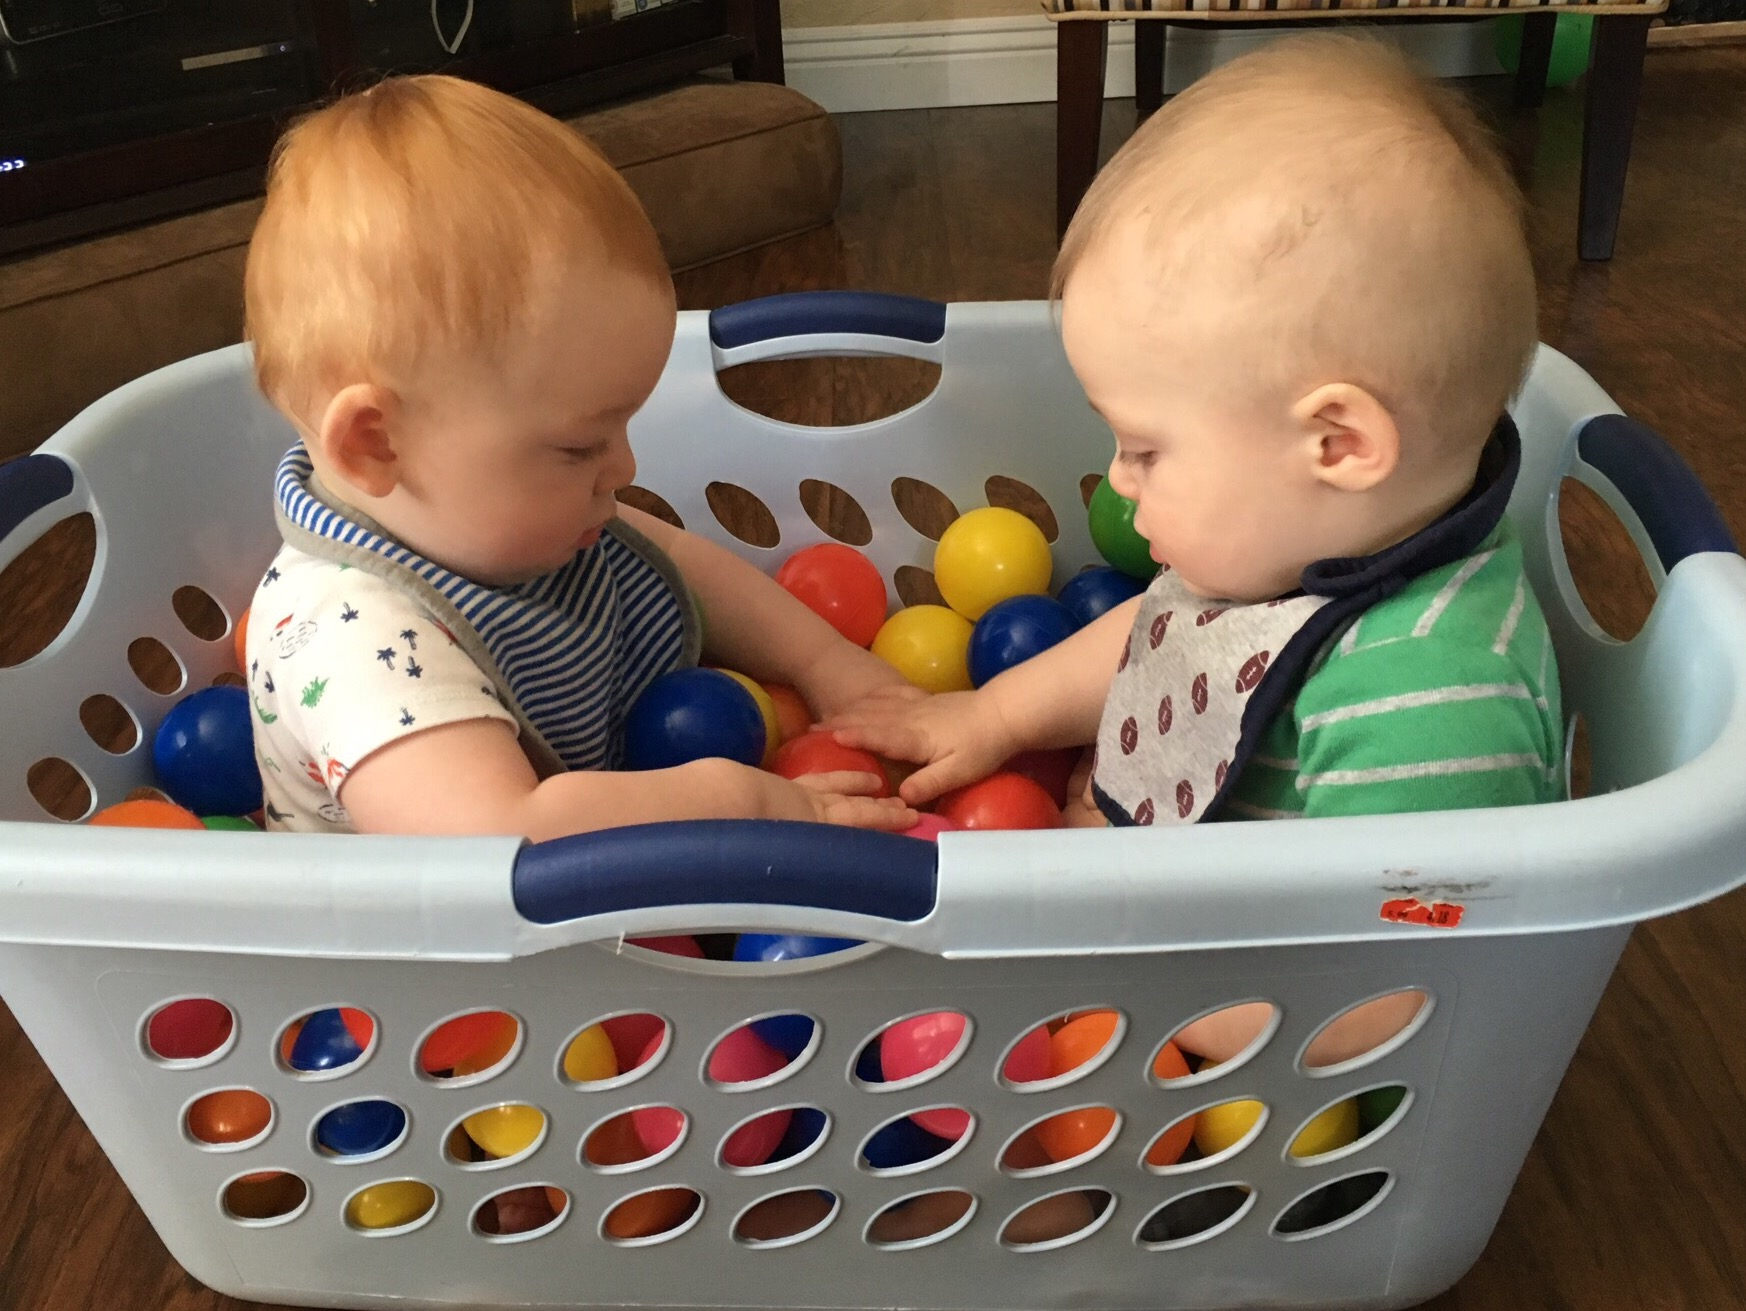 Joshua & Julian, 10 months old, in our homemade ball pit